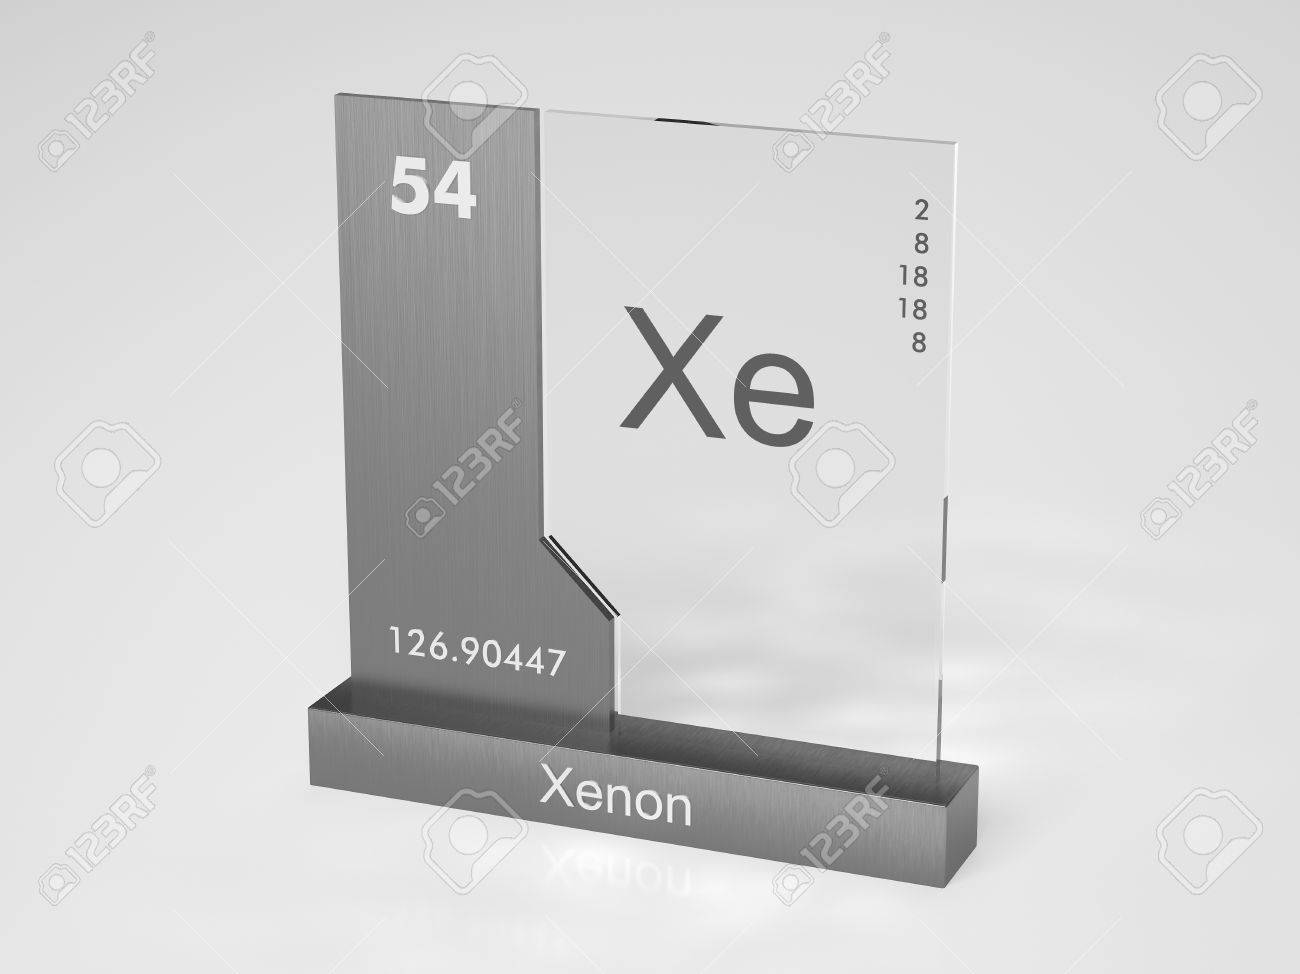 Xenon symbol xe chemical element of the periodic table stock stock photo xenon symbol xe chemical element of the periodic table urtaz Choice Image